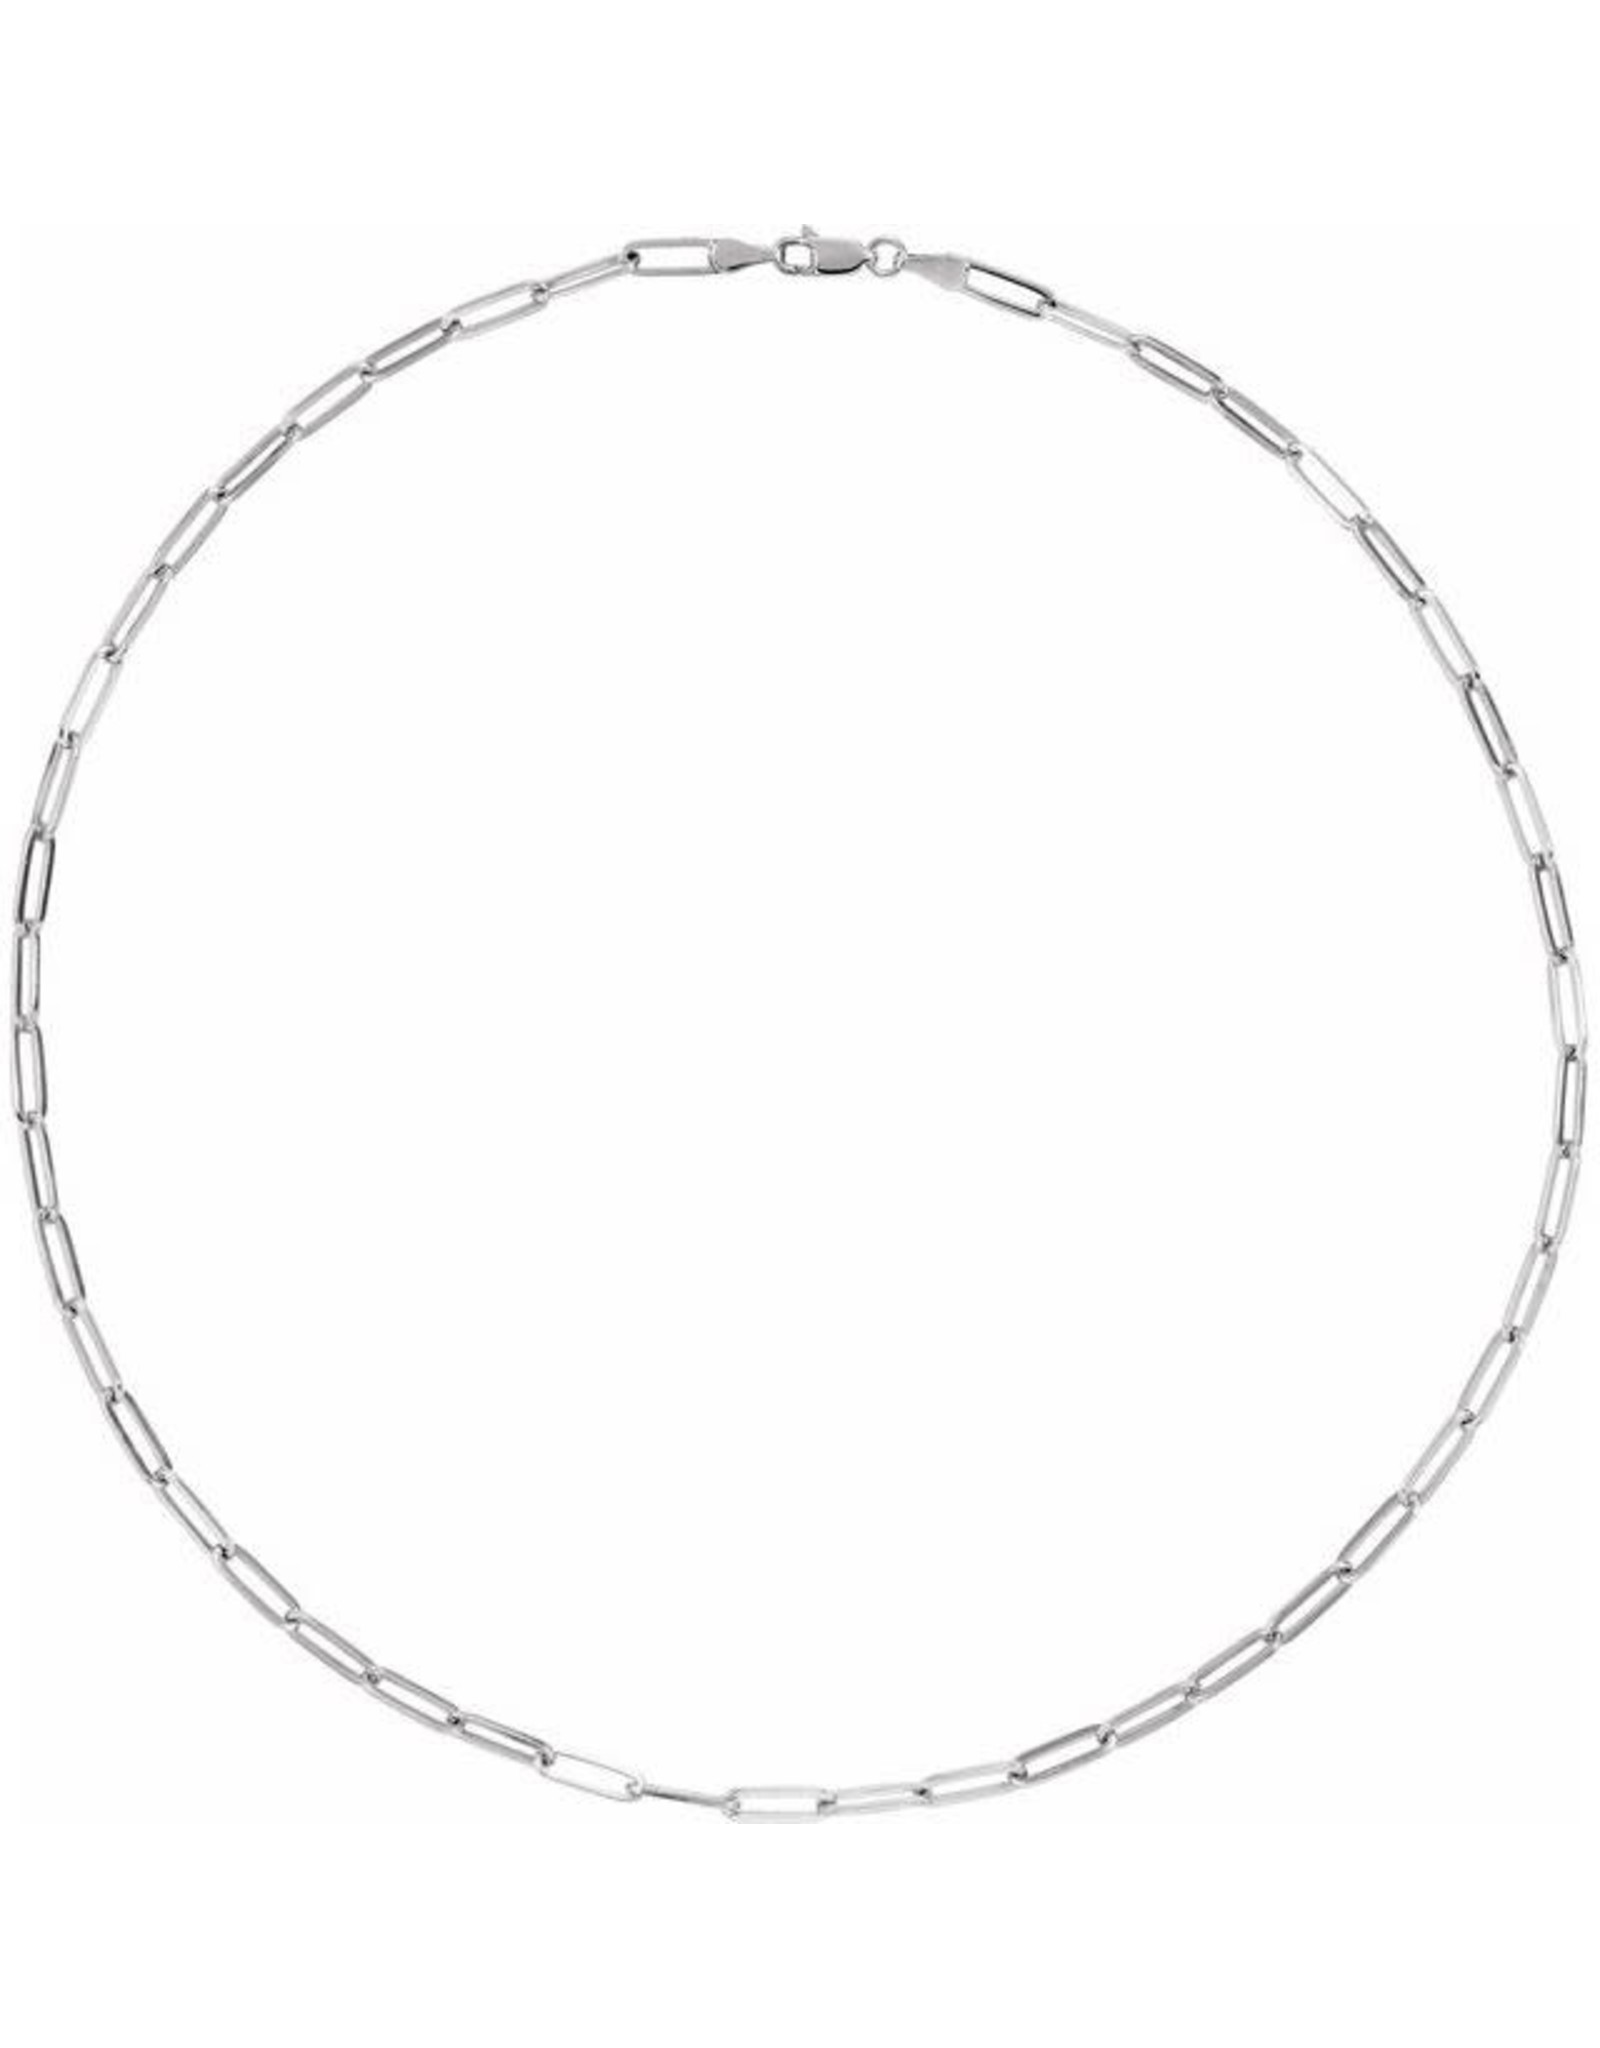 """14K White Gold Paperclip Necklace, 18"""", 7.4dwts"""